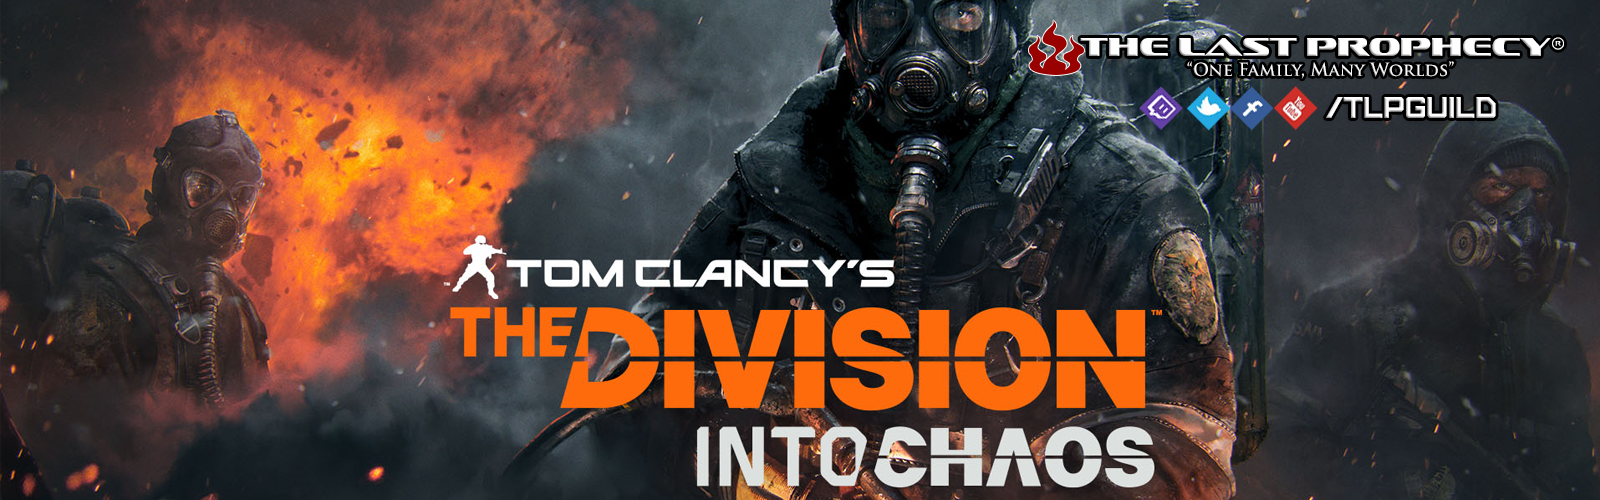 The Division Patch Notes Reveal New Features, Changes, and Bug Fixes – GameSpot